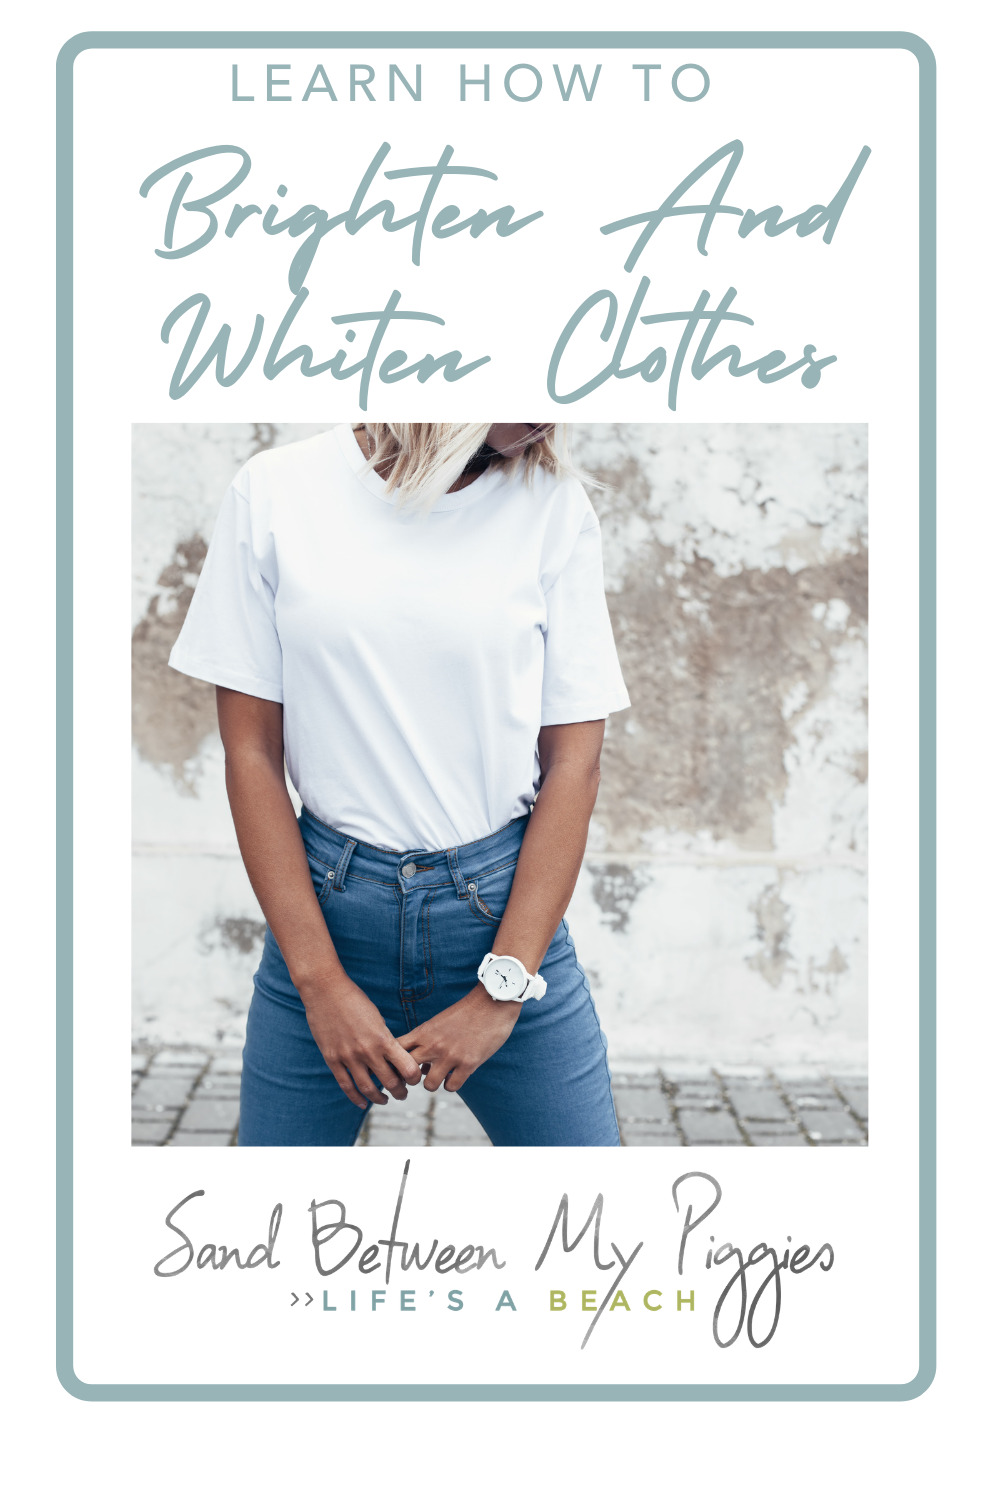 Nobody likes dull or dingy clothes. Try these easy tips to brighten and whiten your clothes from Sandbetweenmypiggies.com